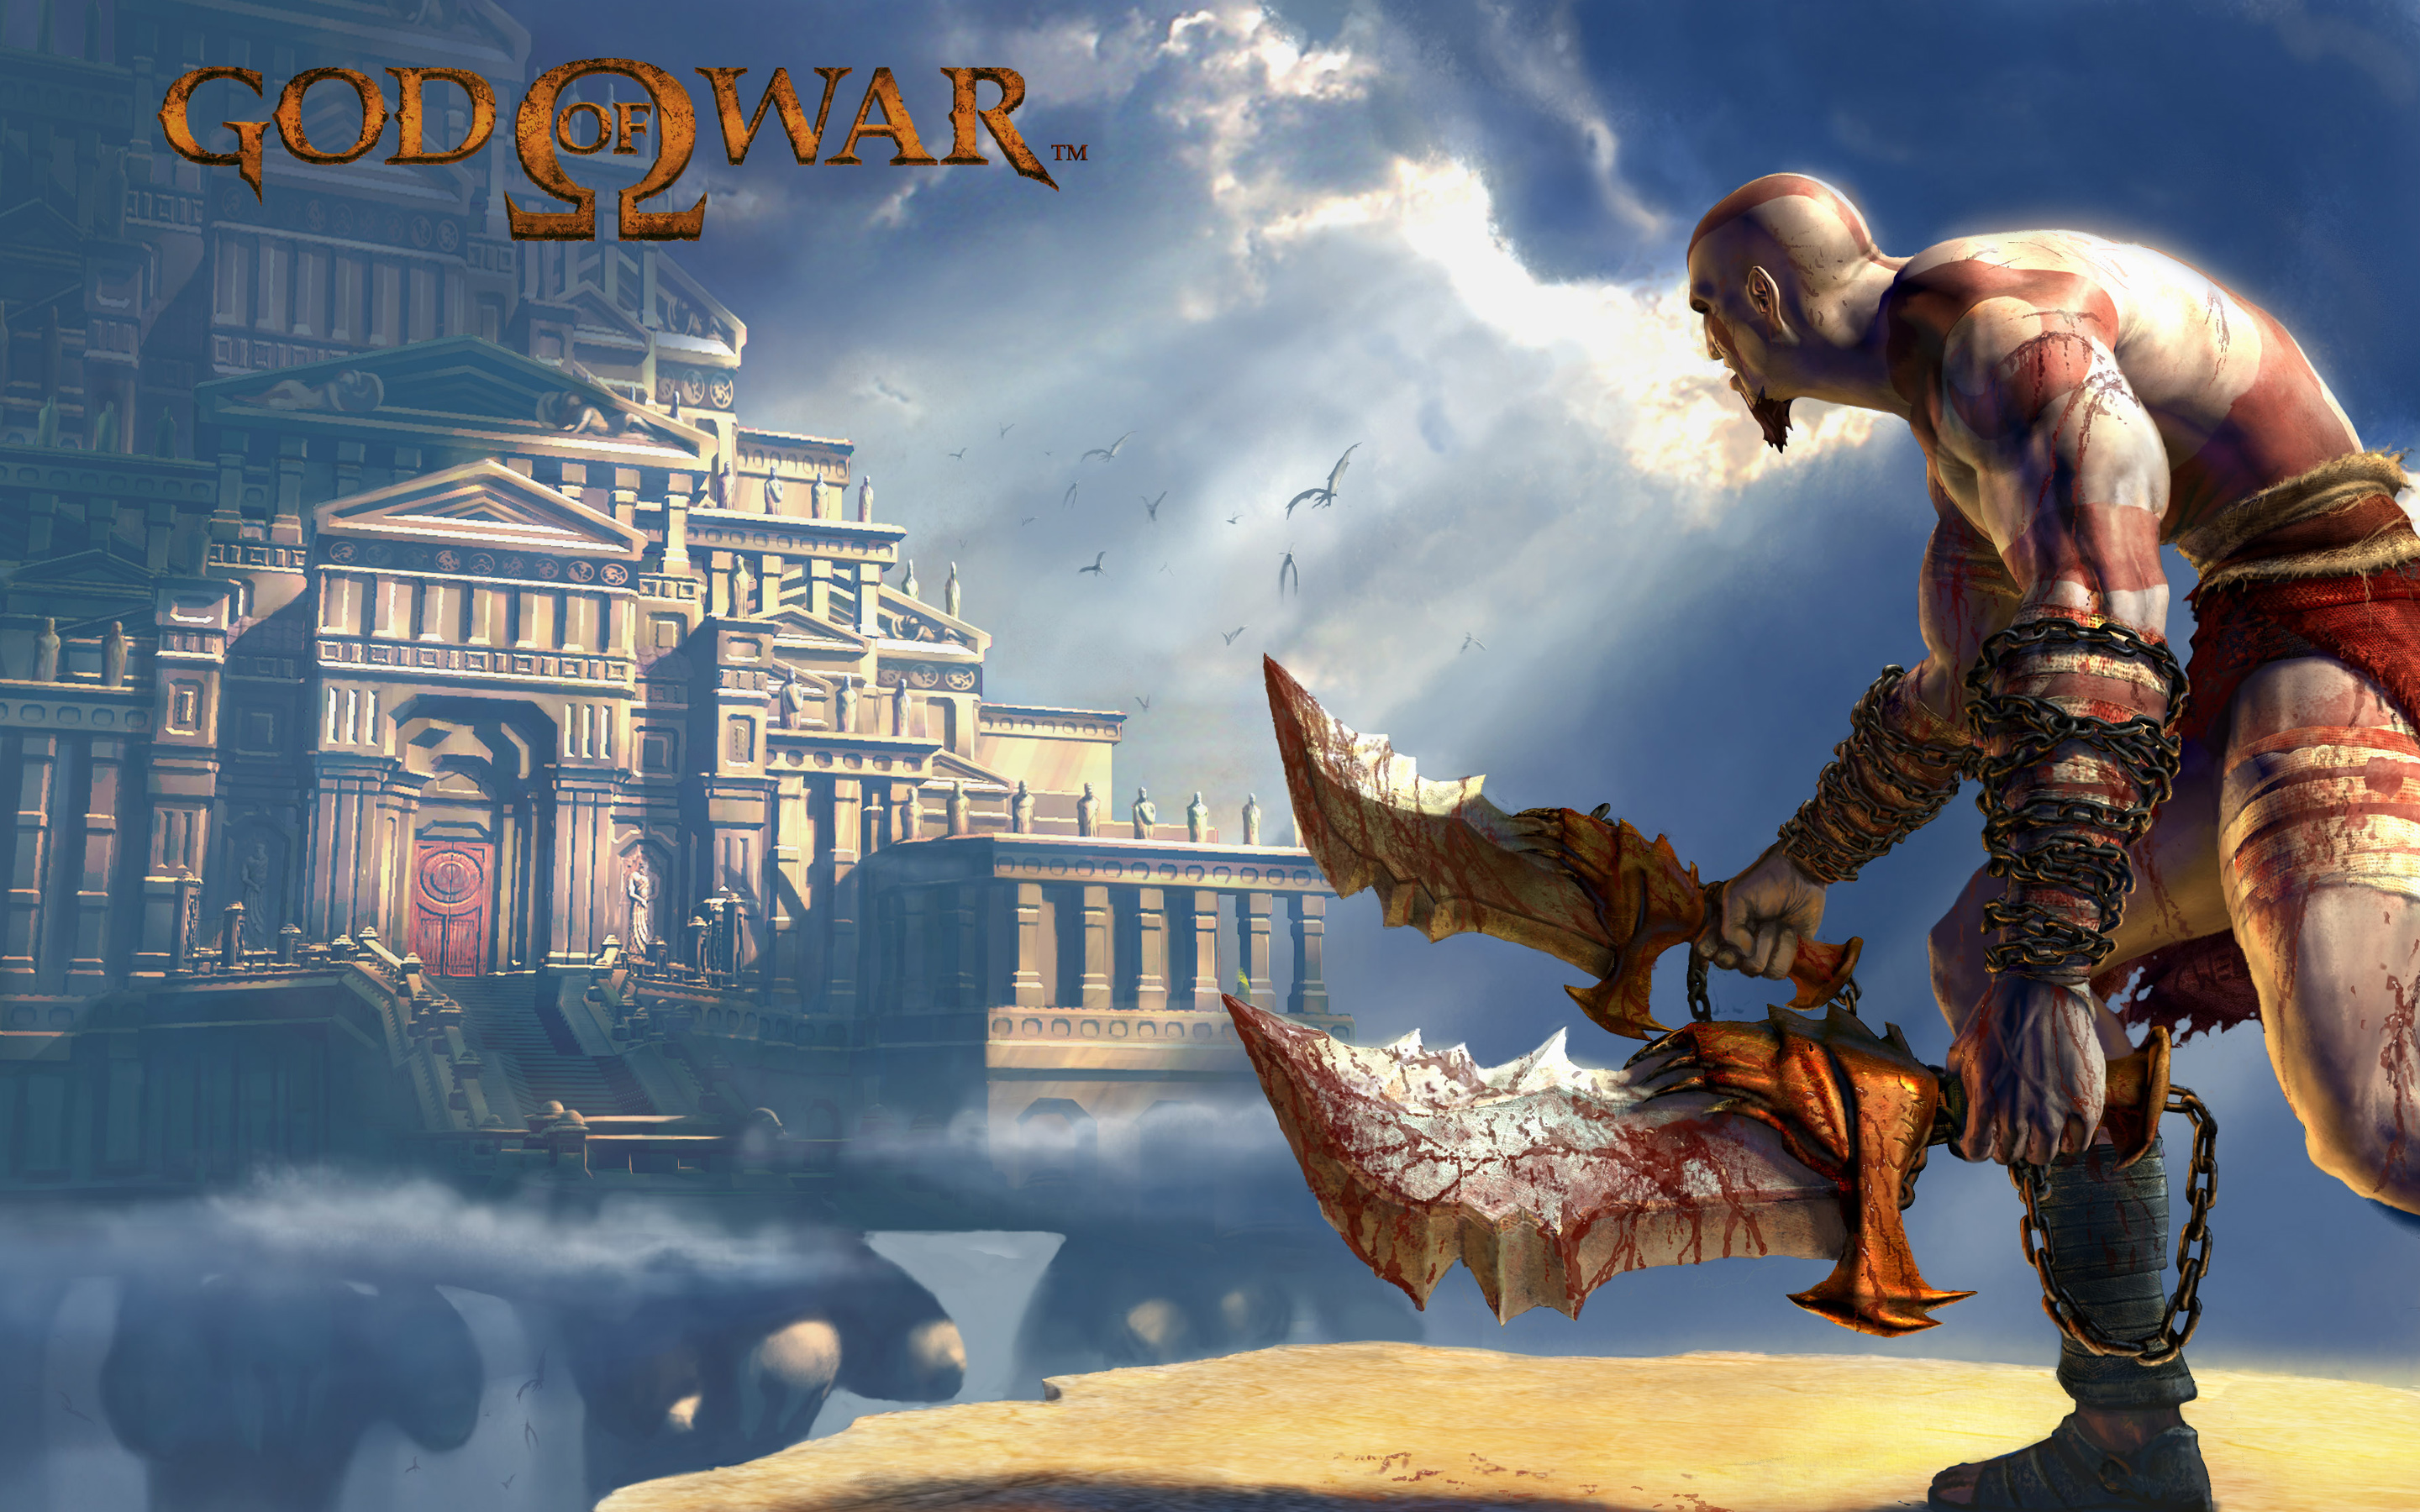 HD Wallpapers God of War 2 Game